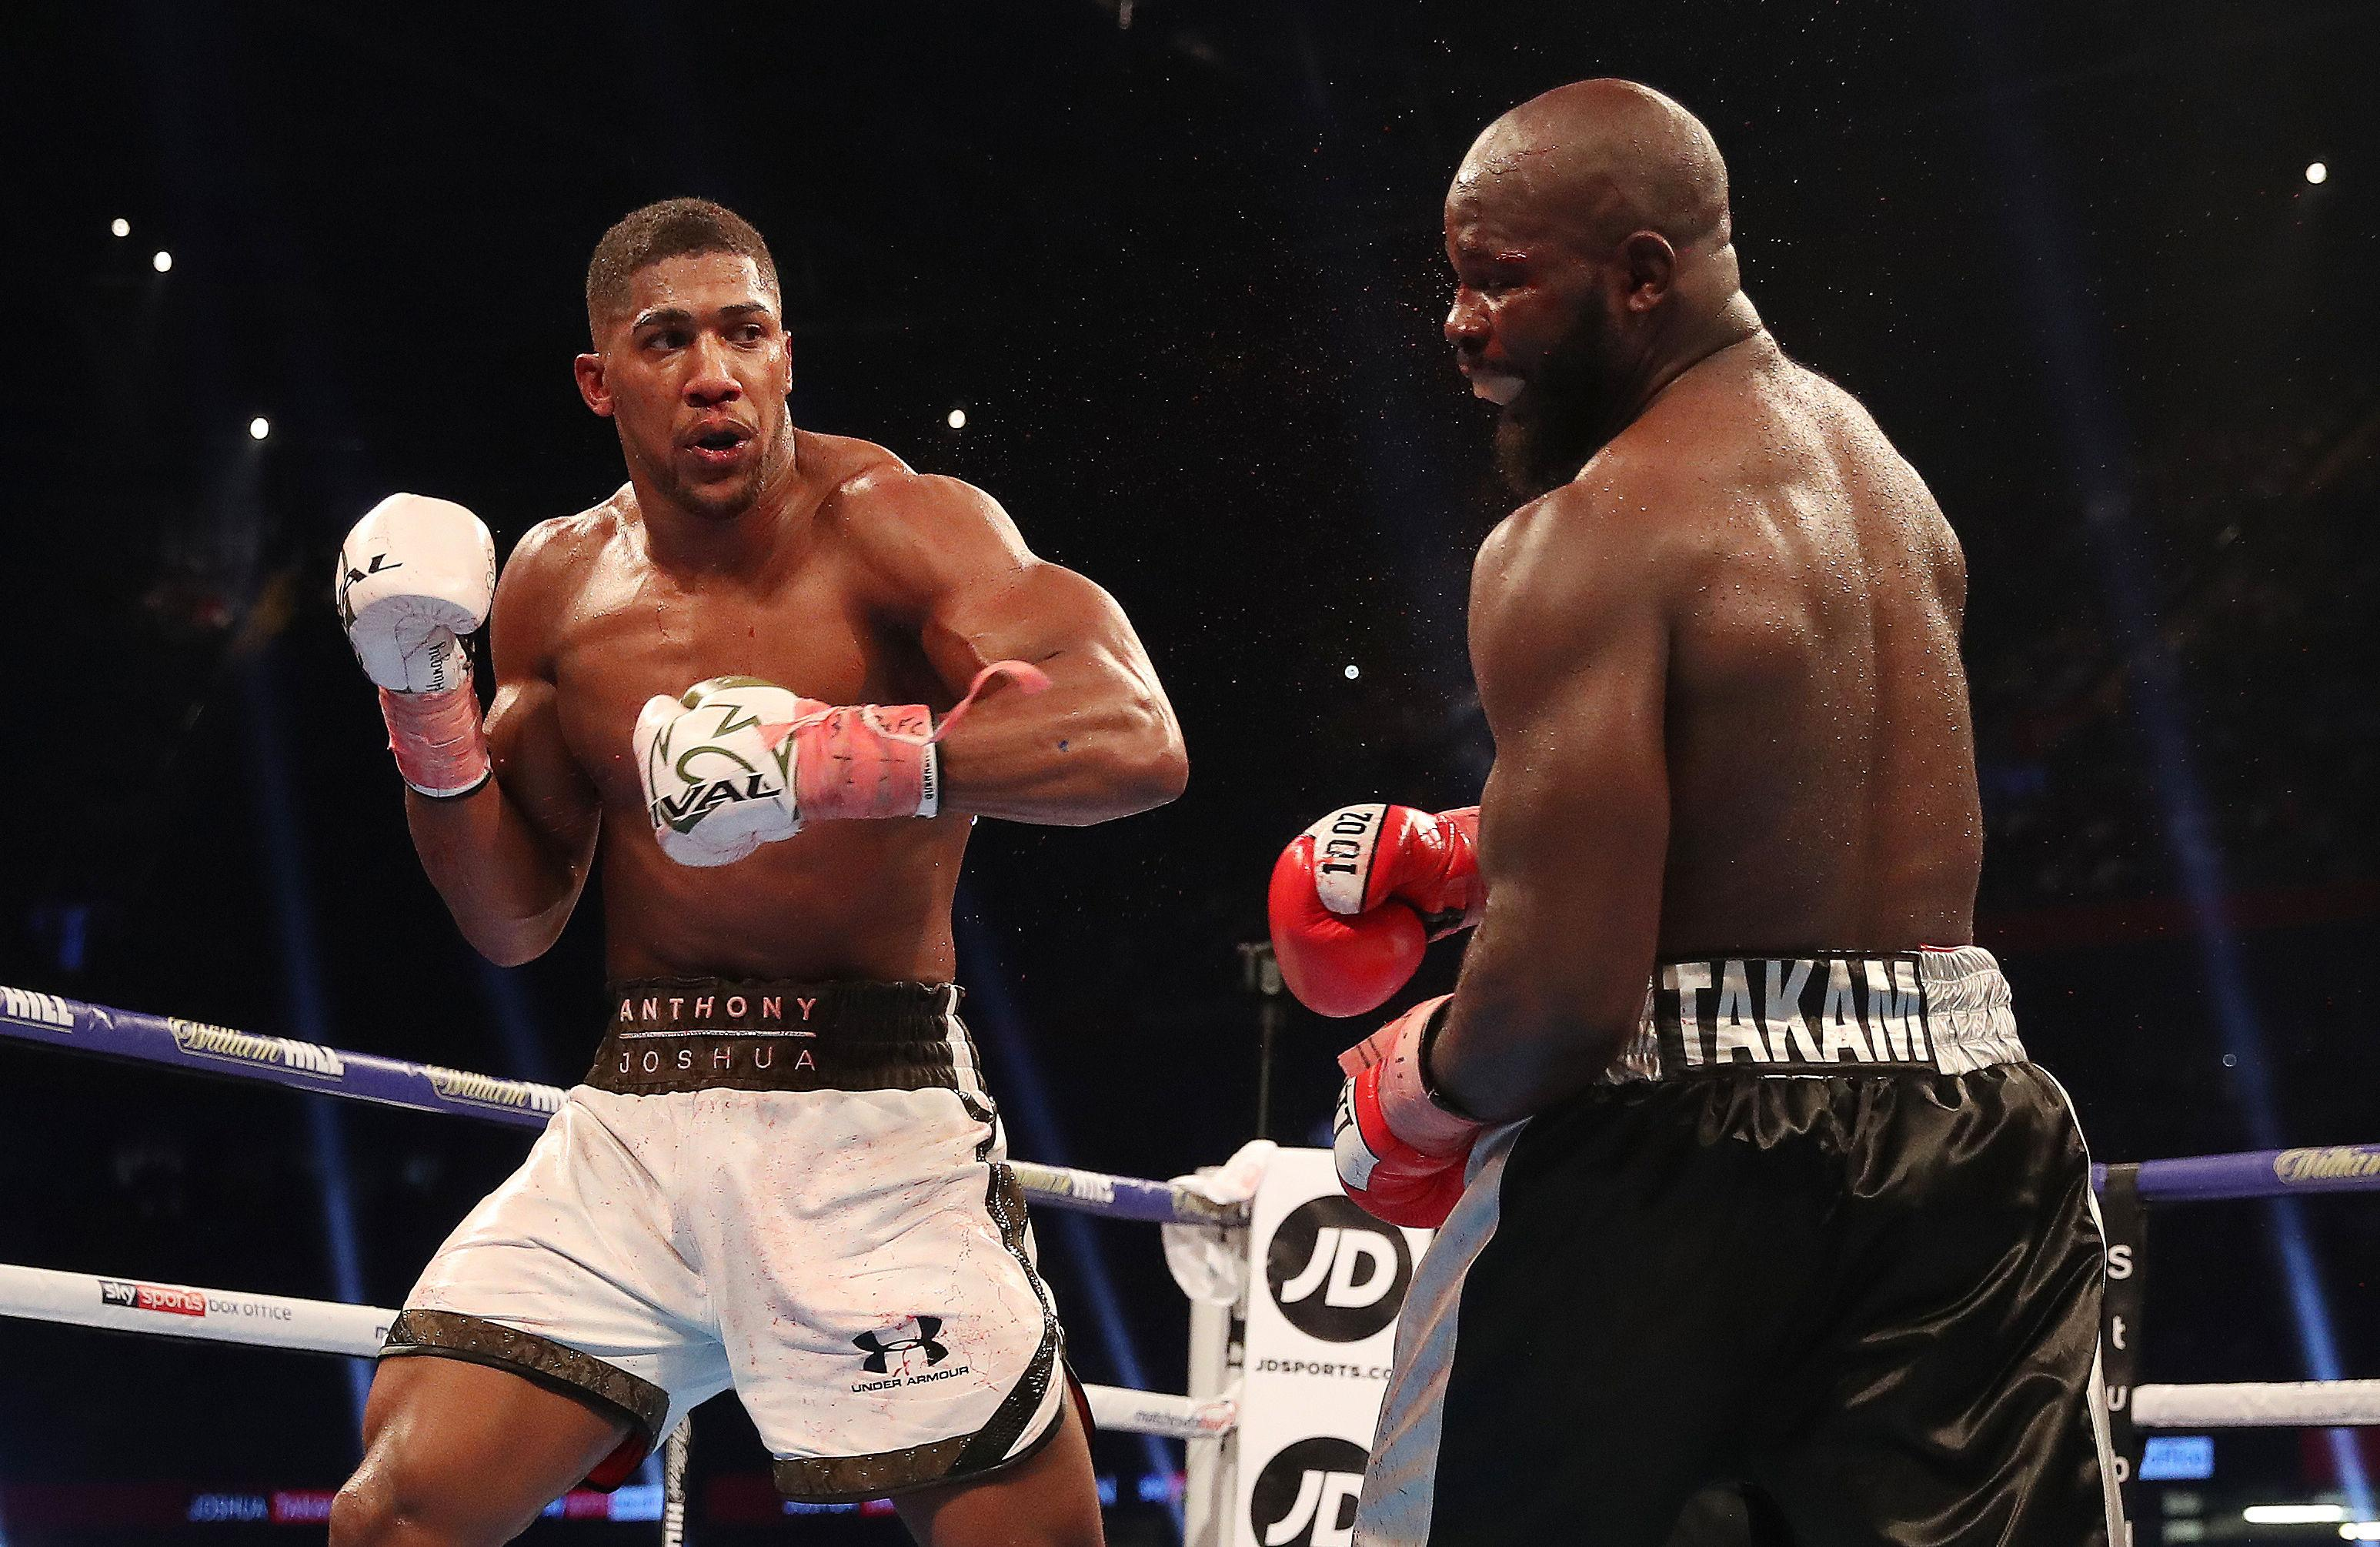 The Englishman defeated Carlos Takam to retain his titles at the Principality Stadium in October